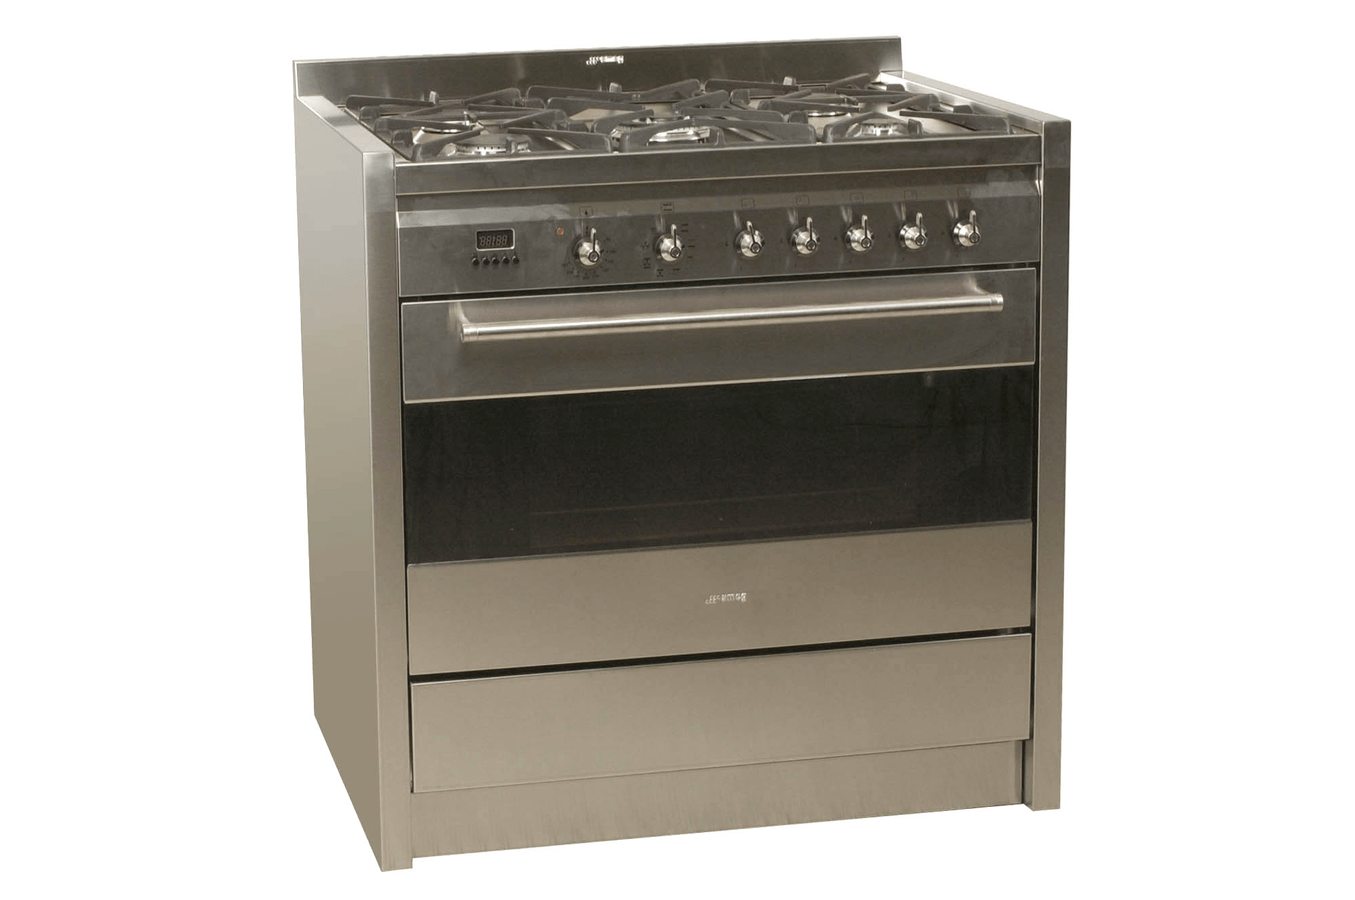 Piano De Cuisine Smeg Piano De Cuisson Smeg Cs 15 5 Inox 1886894 Darty